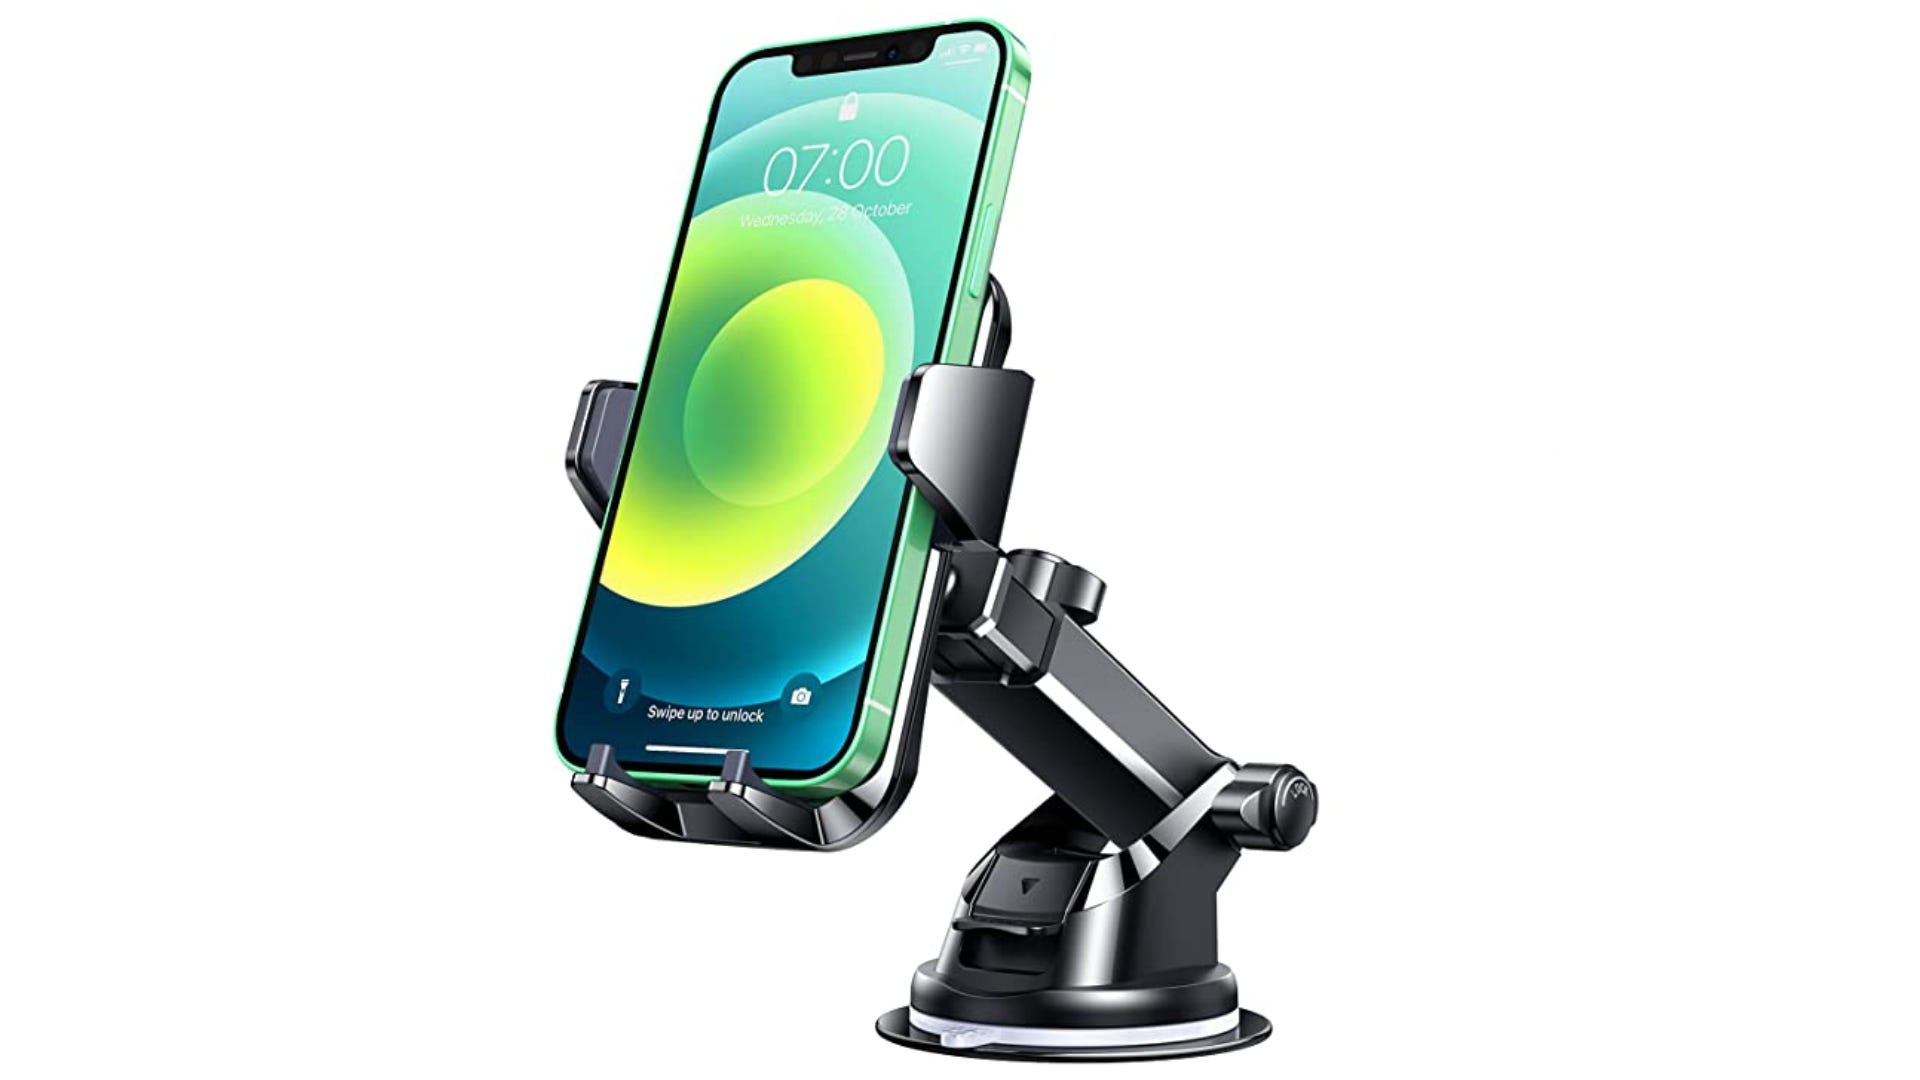 A metallic black phone holder with suction cup displaying a phone.